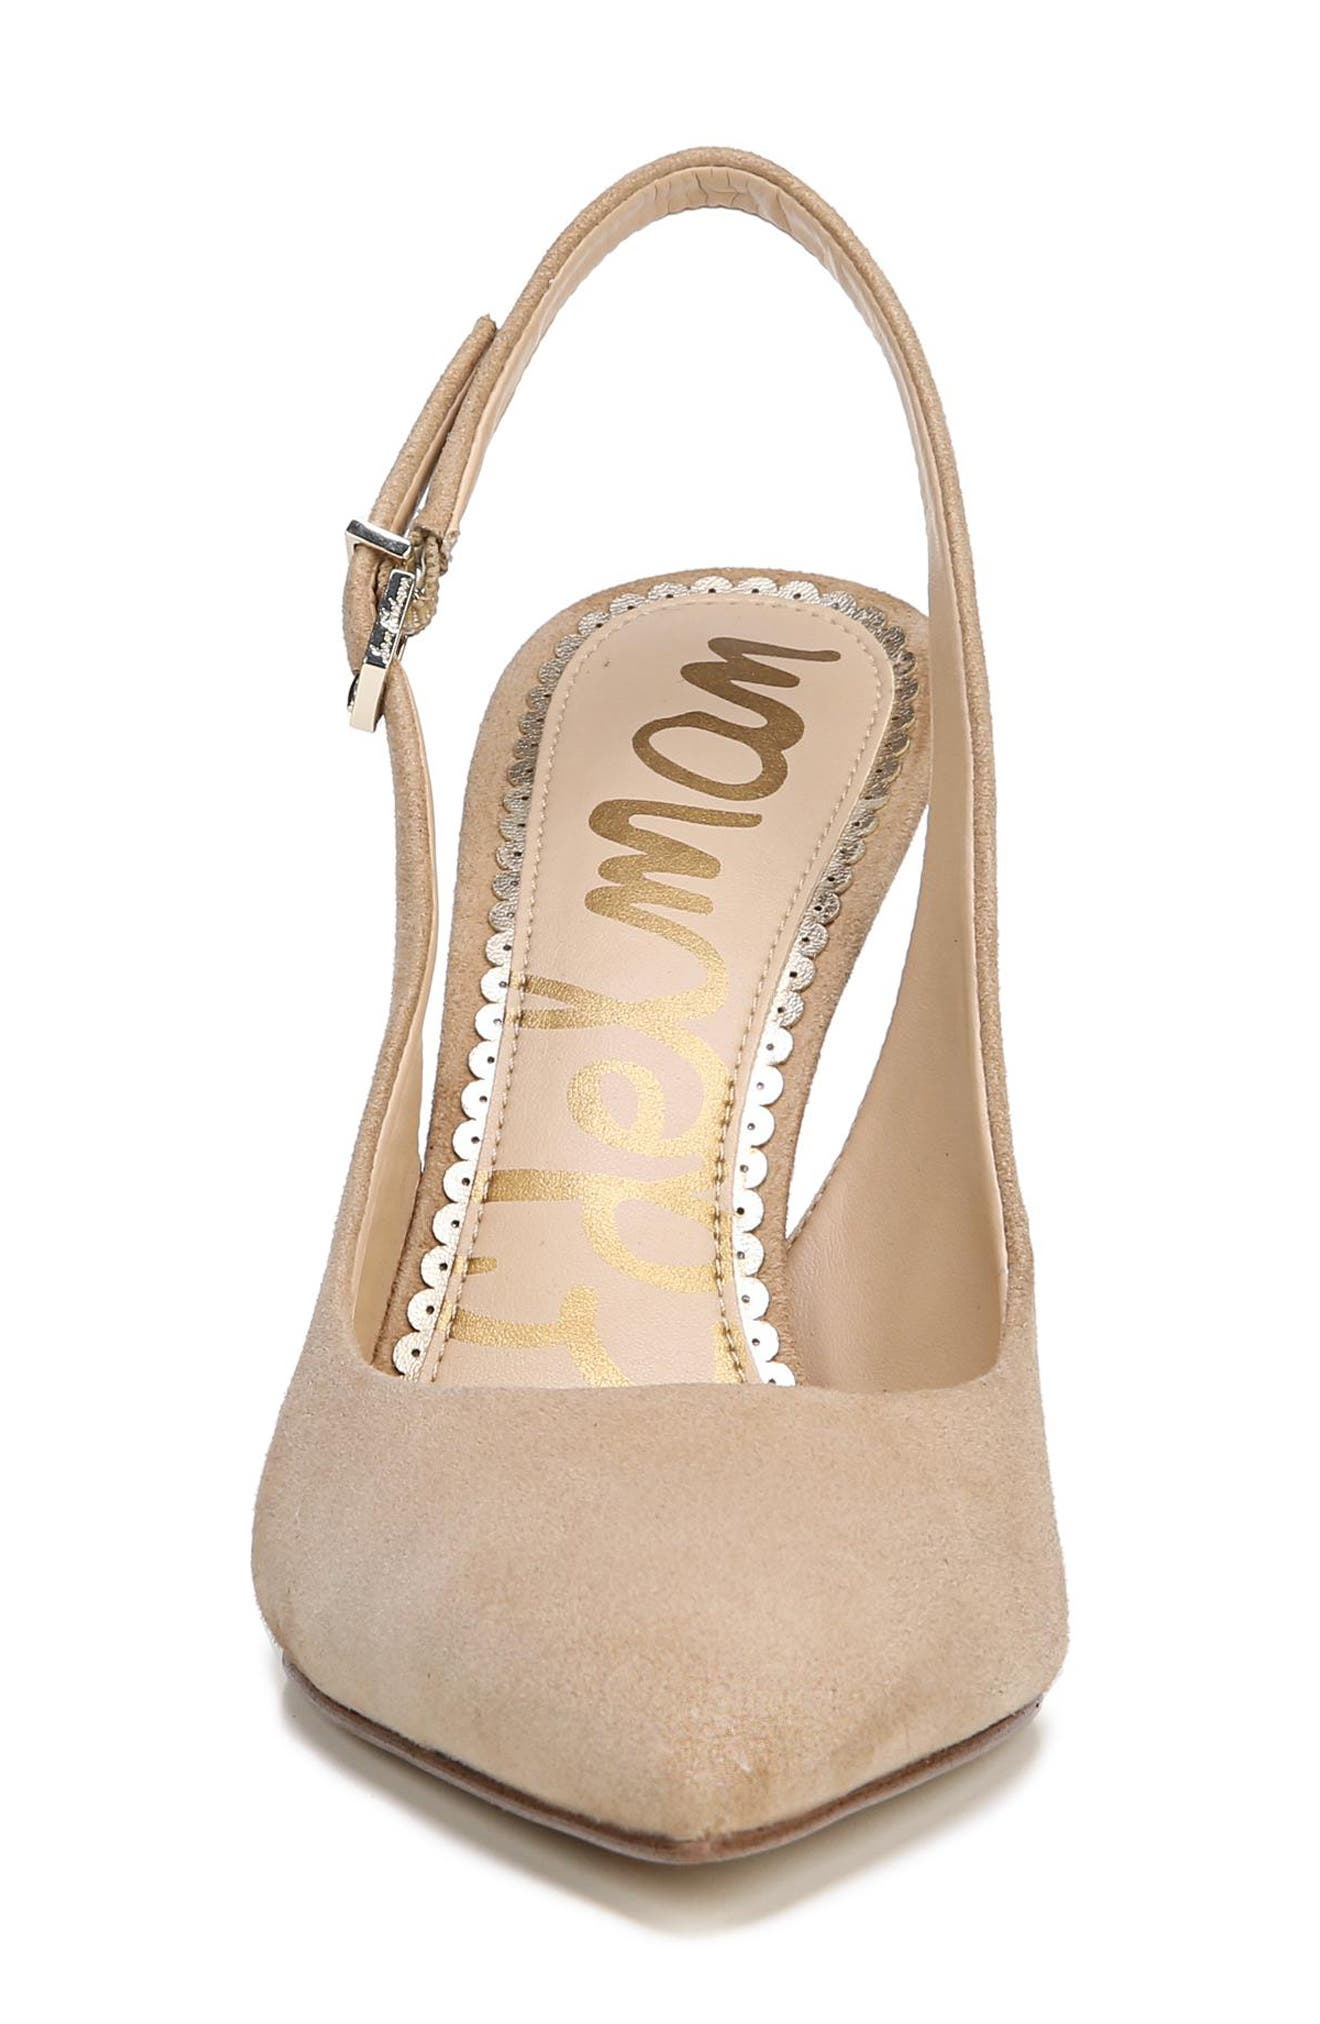 Hastings Slingback Pump,                             Alternate thumbnail 4, color,                             OATMEAL SUEDE LEATHER